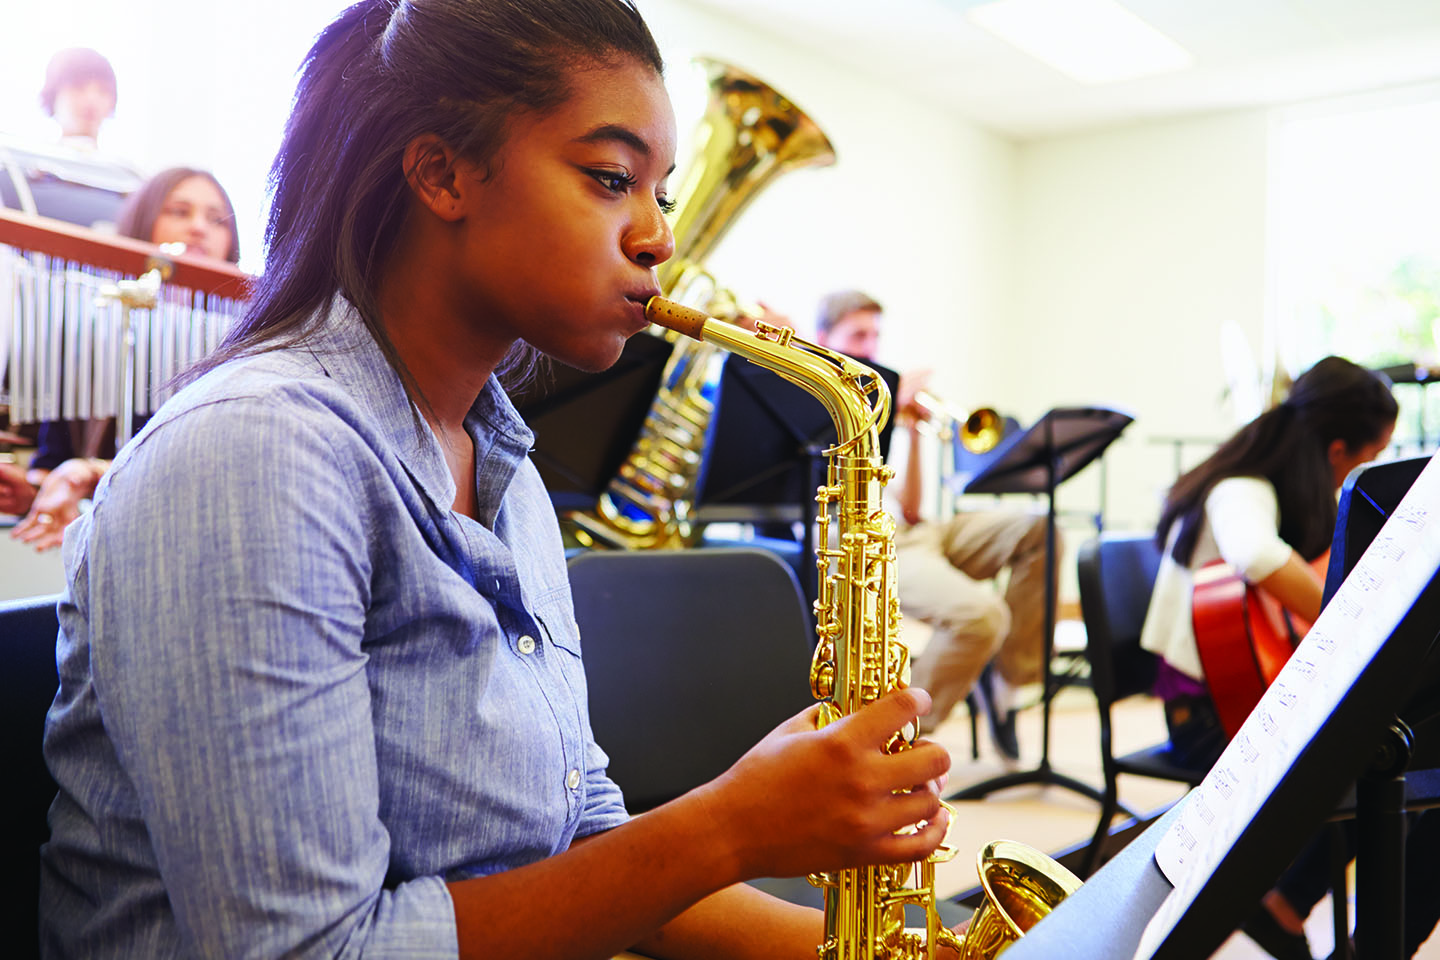 A young girl playing the saxophone